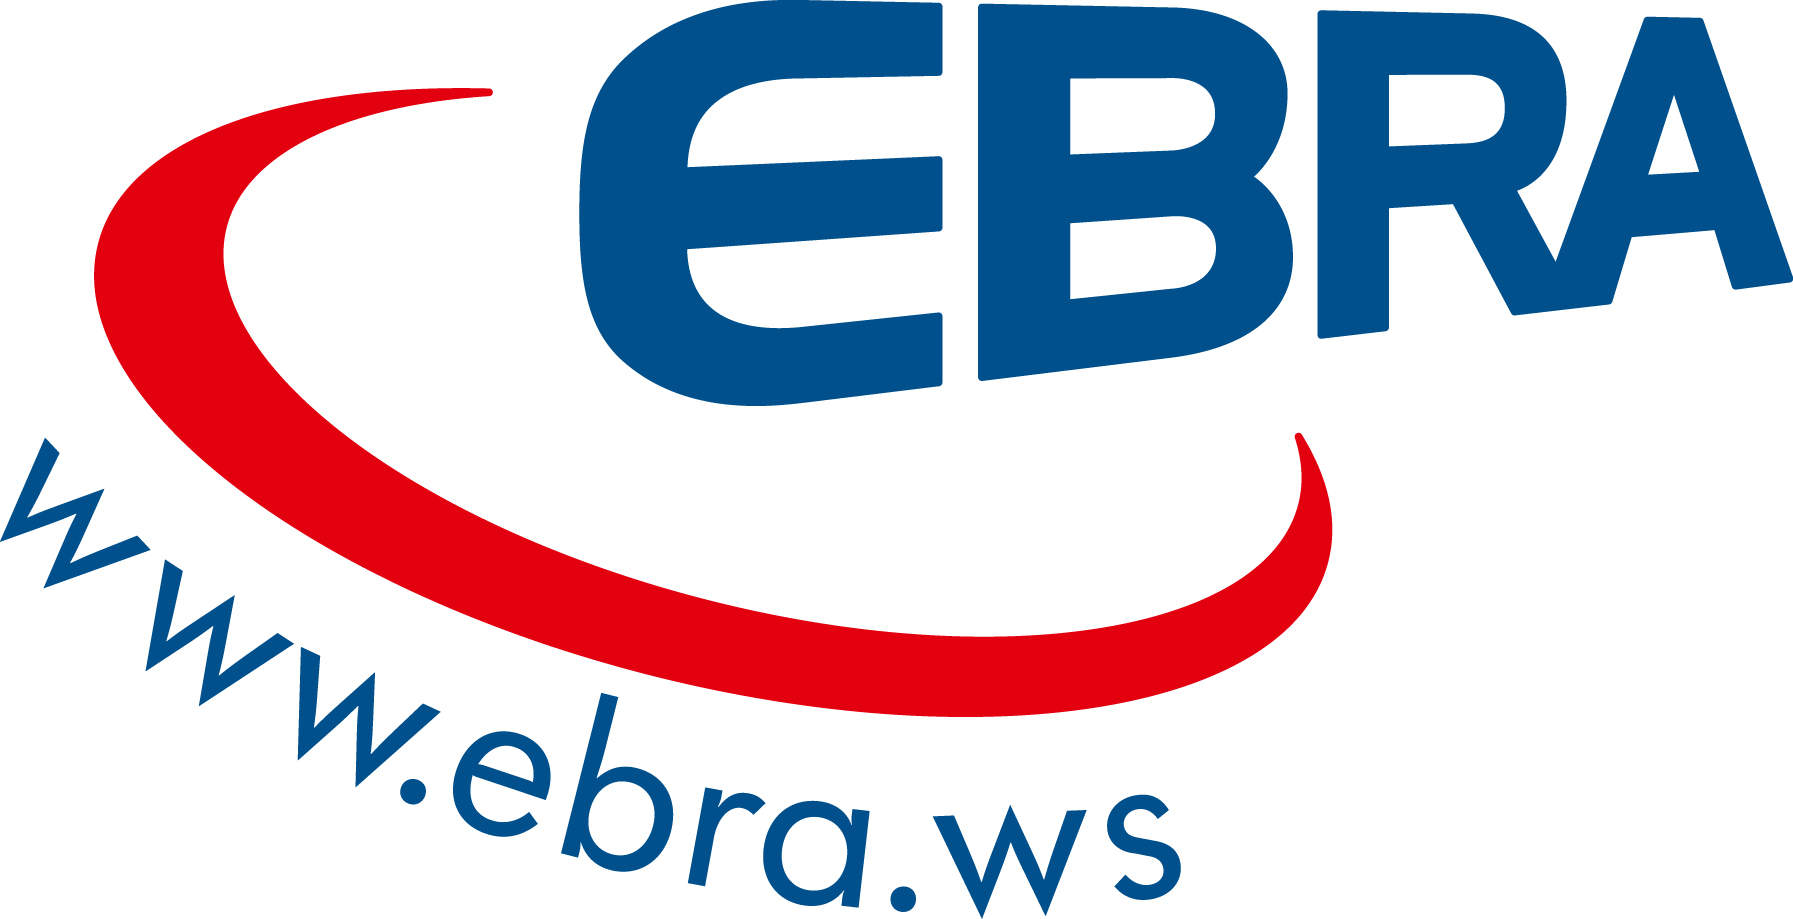 tl_files/BOEE/LOGOS-SPONSOREN-ETC/ebra.jpg